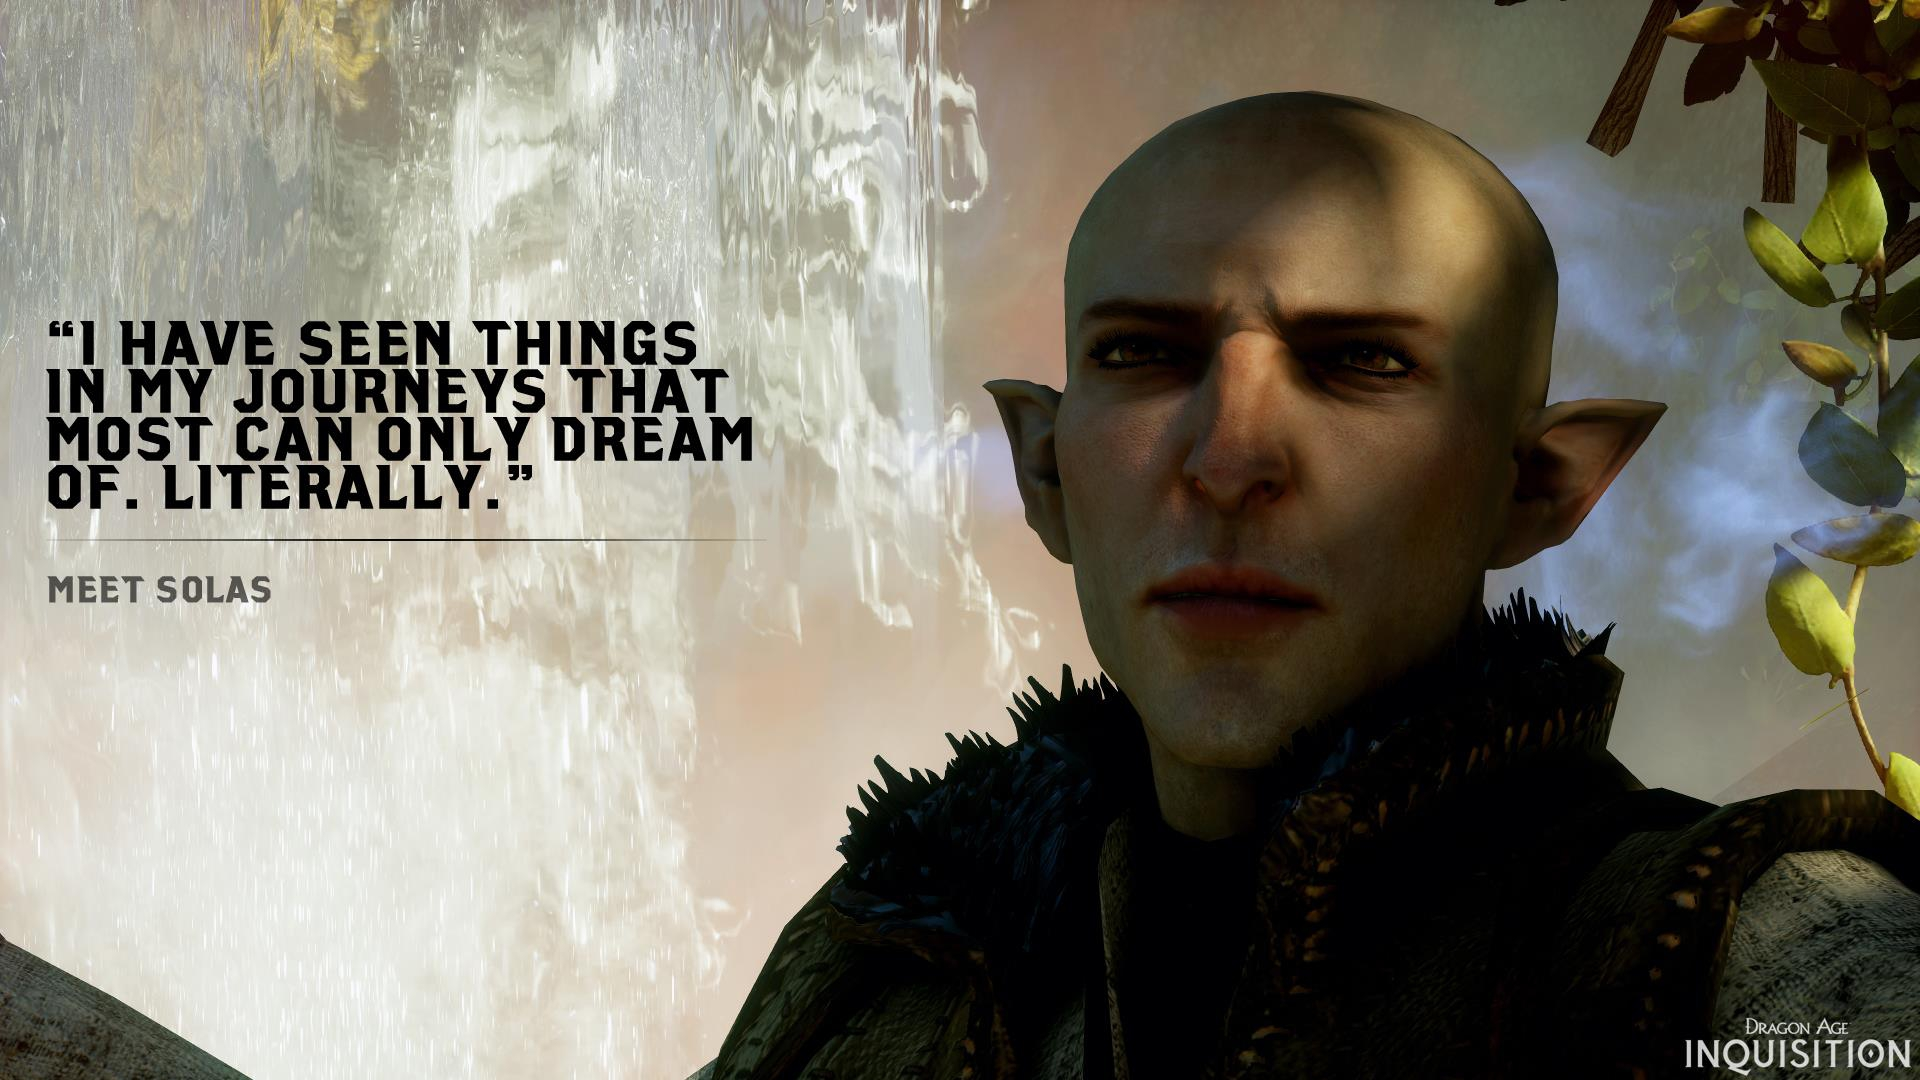 Dragon Age: Inquisition gets an official introduction to